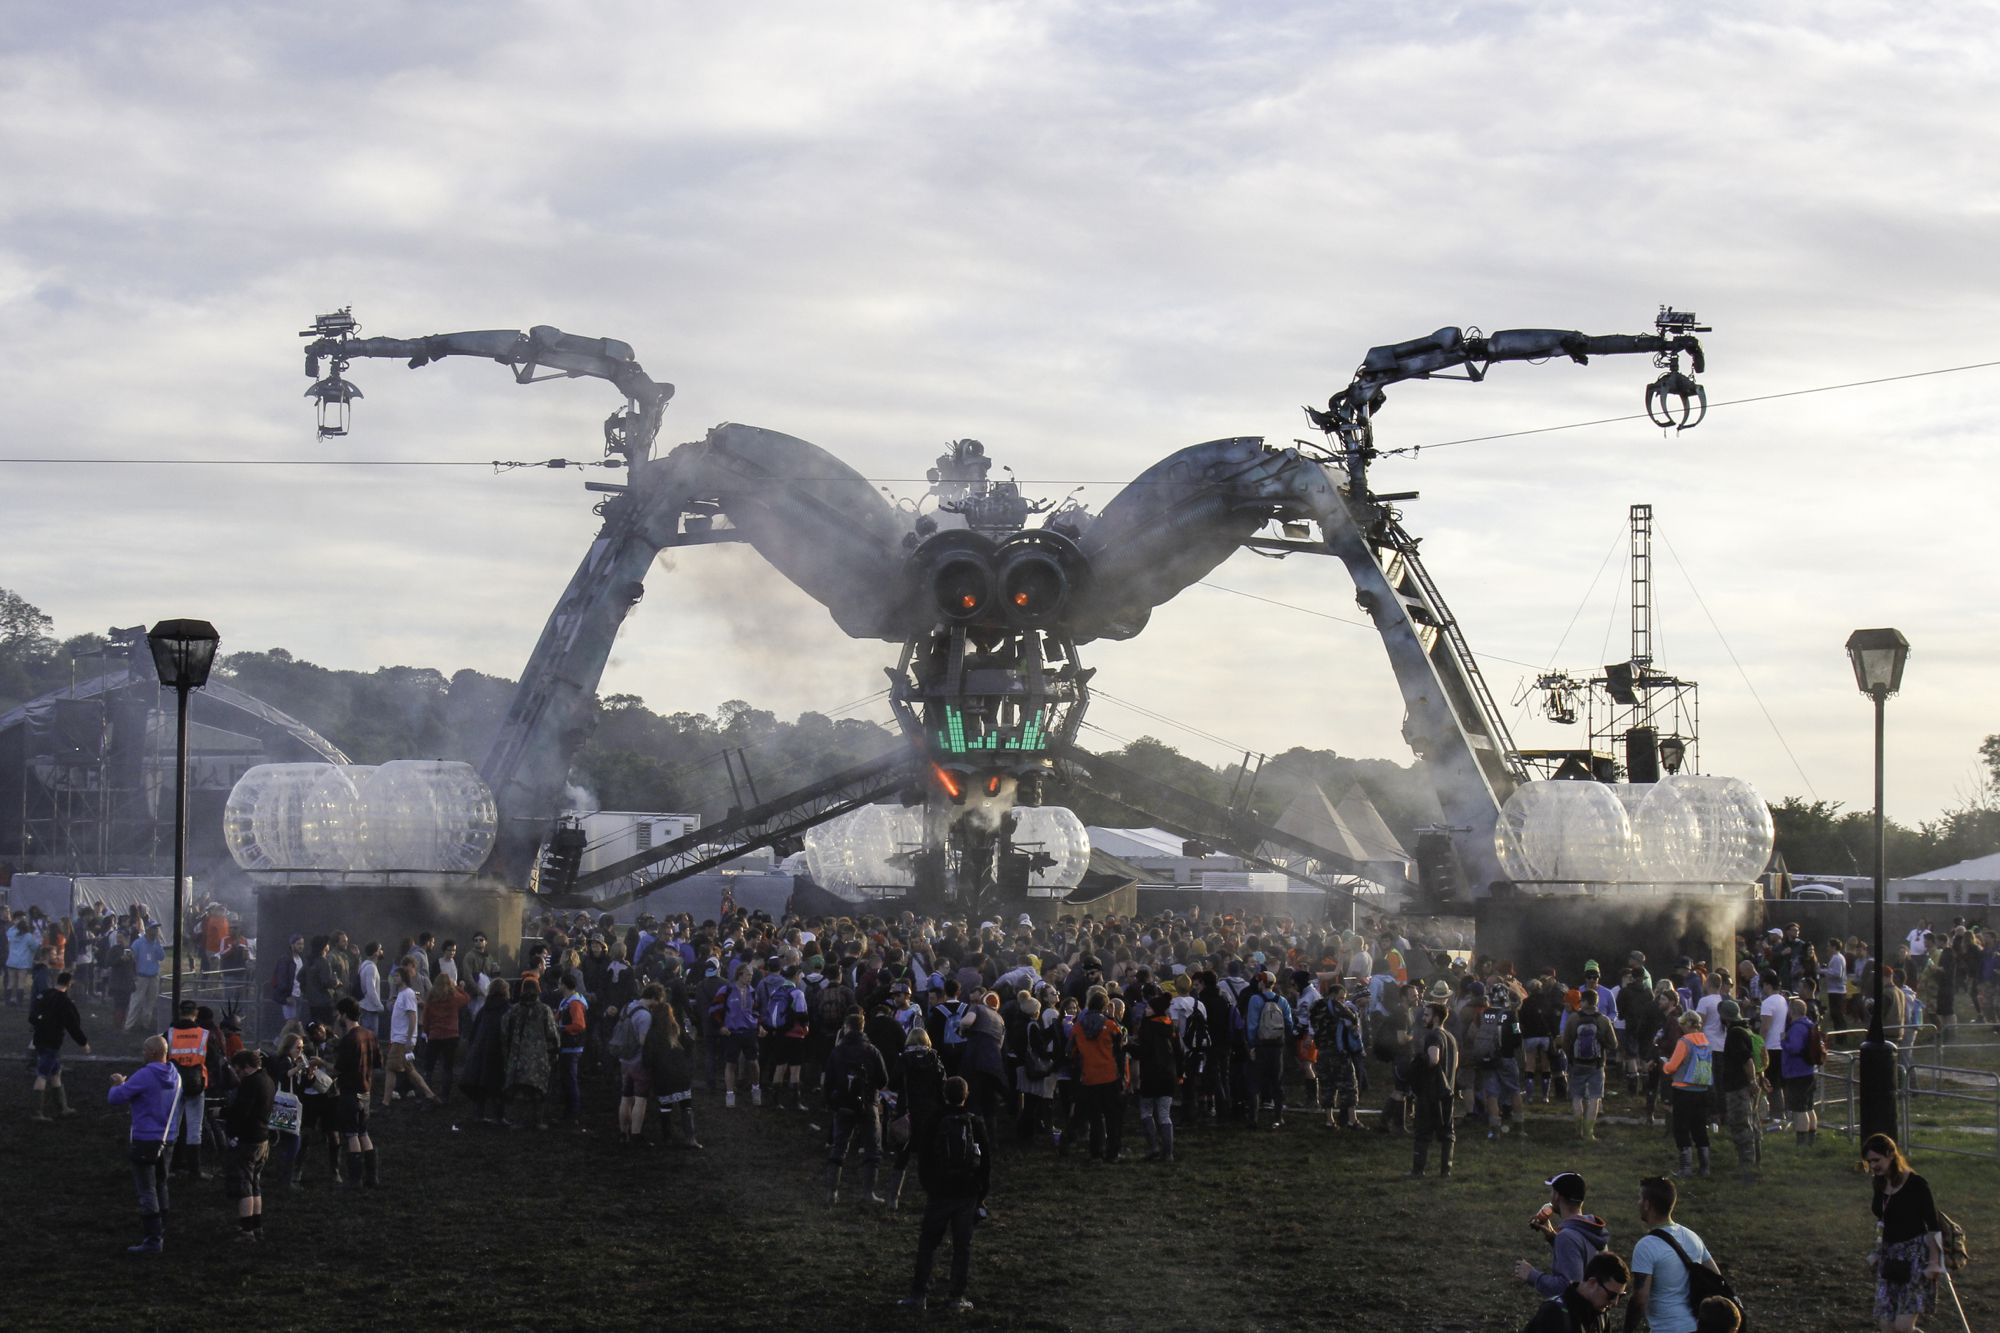 Glastonbury-festival-things-to-do-in-England